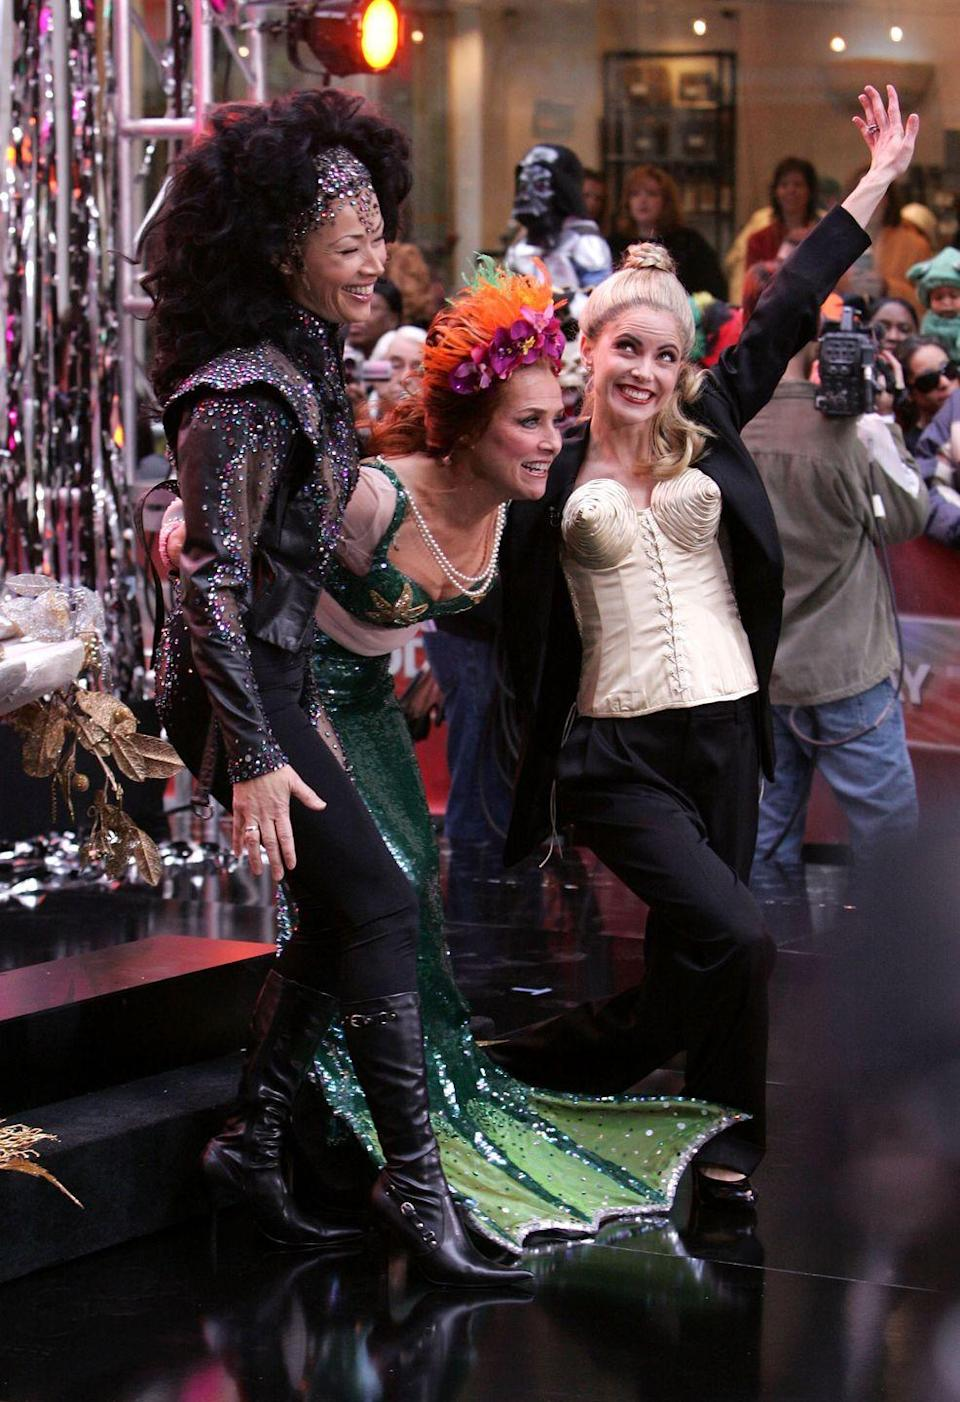 <p>While 2006 didn't have every co-host following the same theme, the costumes were still undoubtedly amazing. Ann Curry went as Cher, Meredith was Bette Midler, and Natalie struck several poses on the Plaza as Madonna. </p>